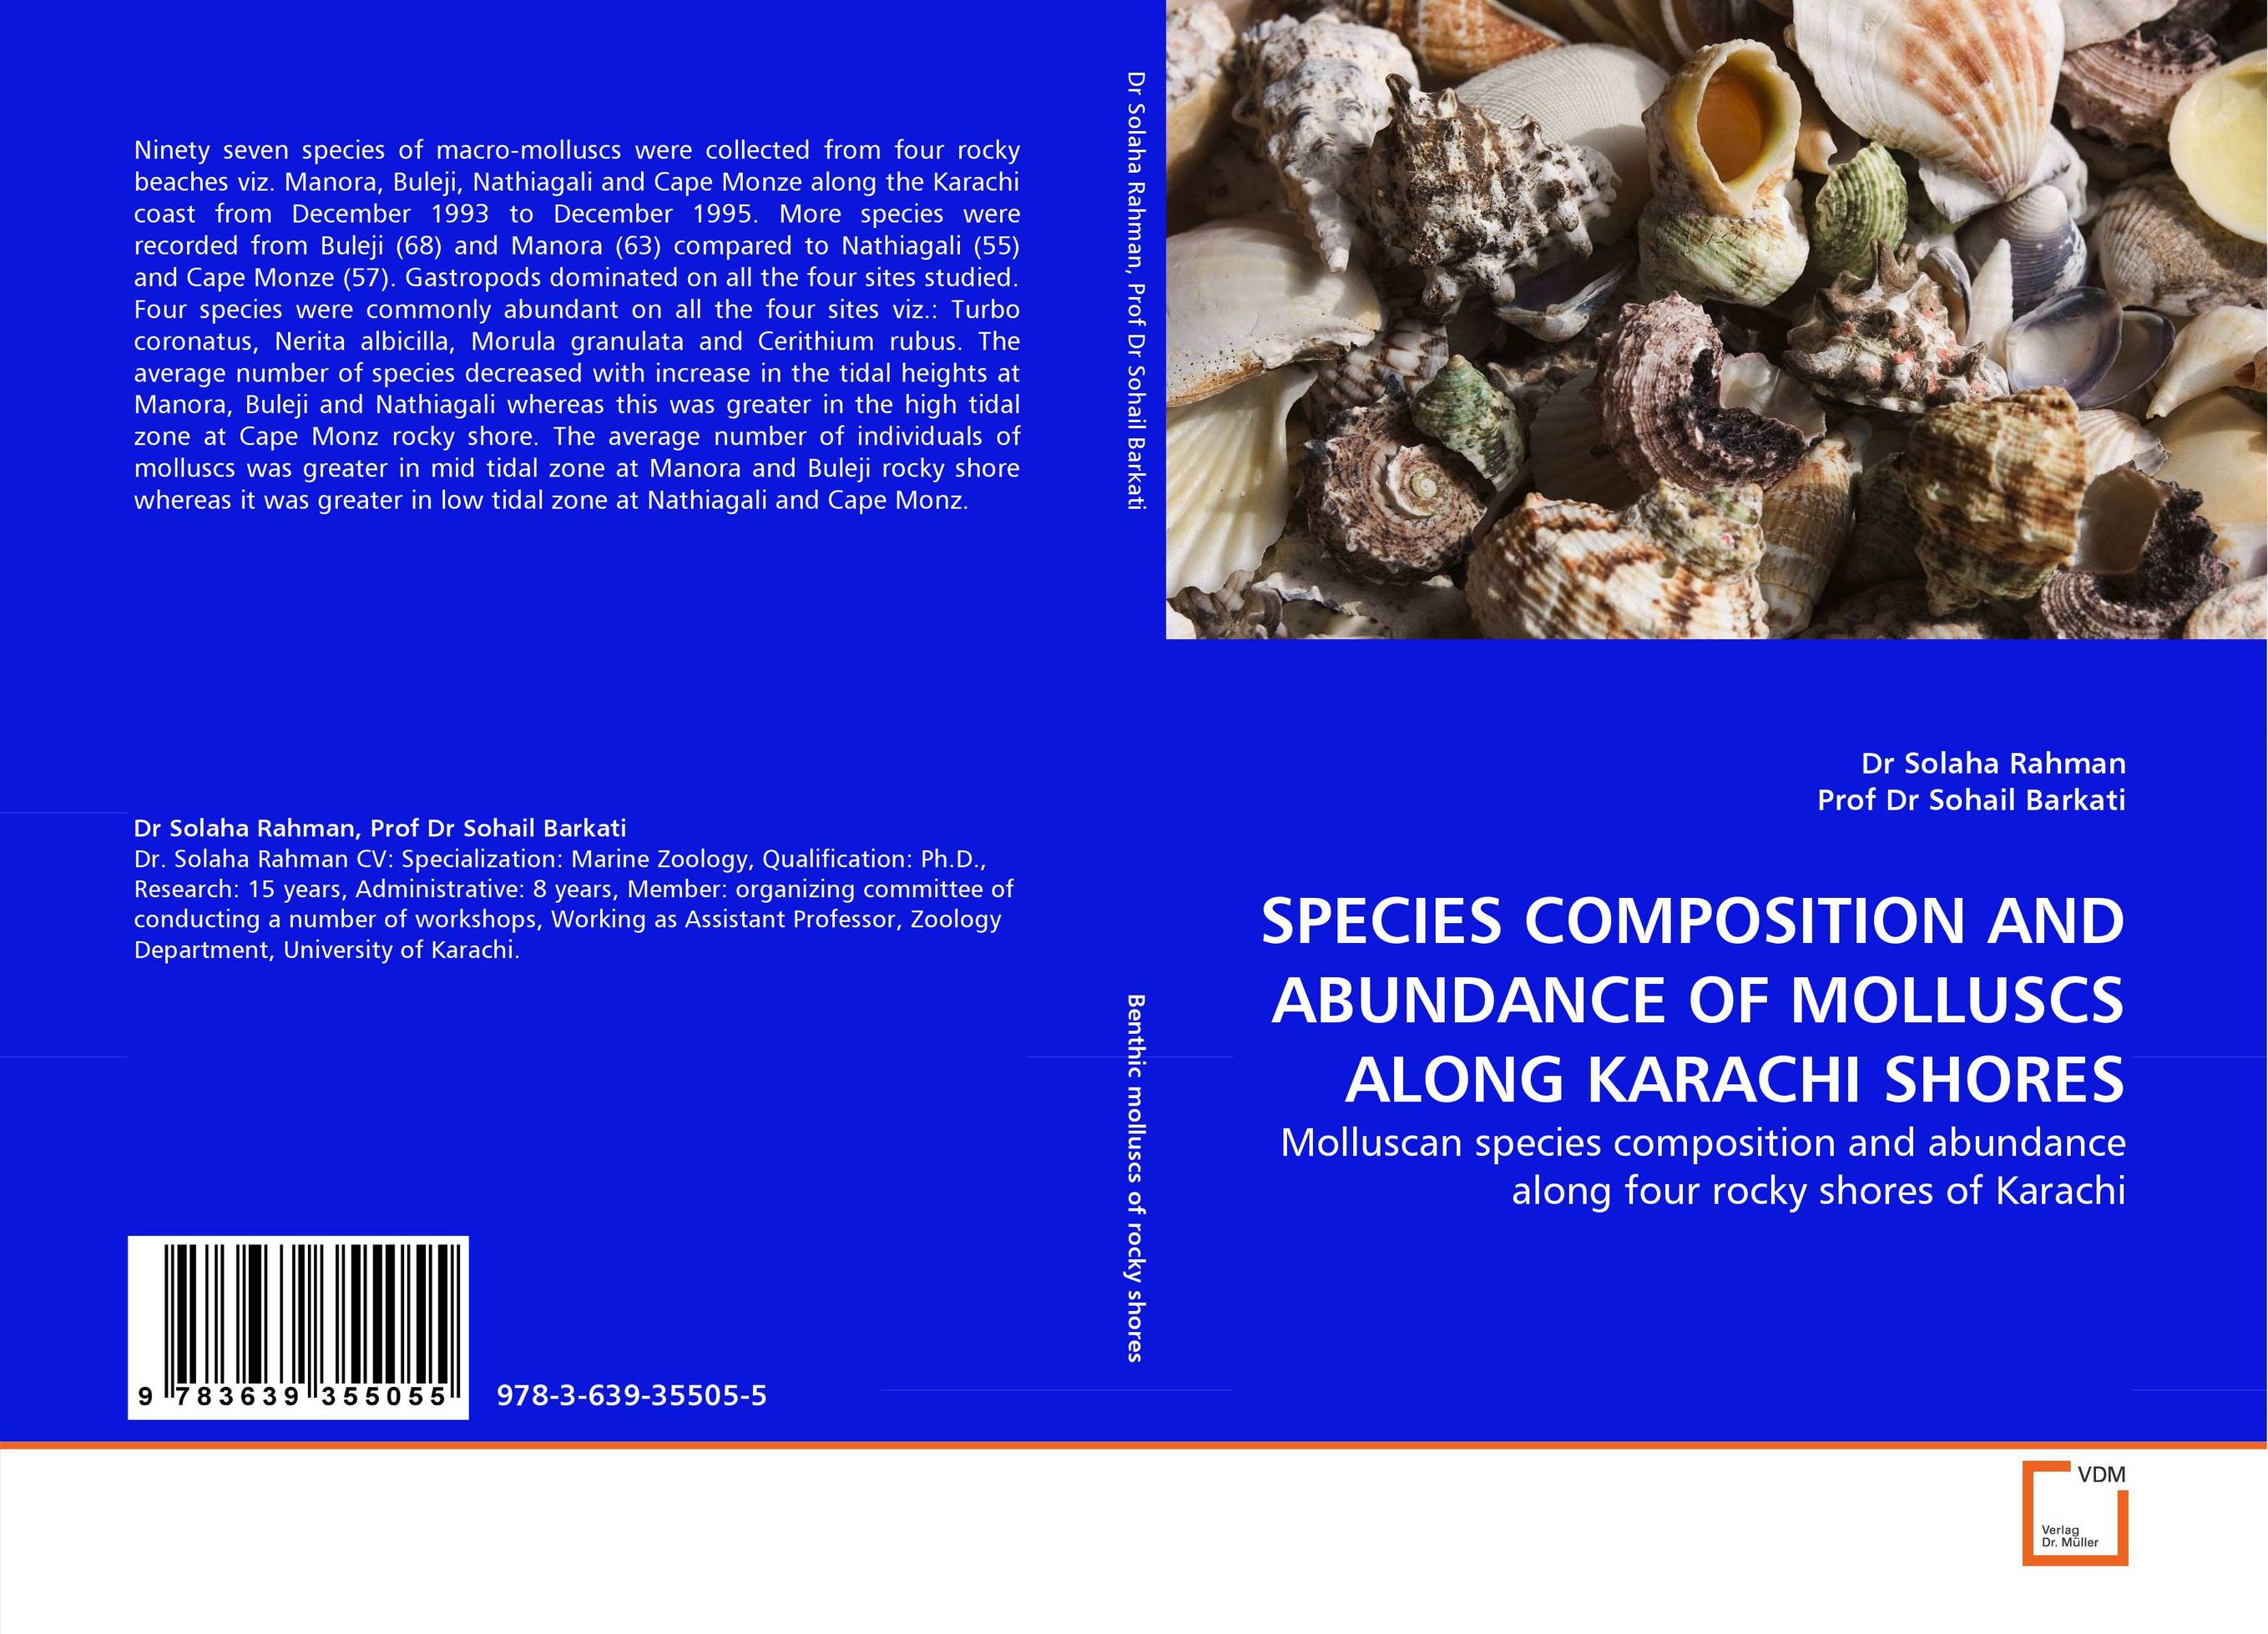 SPECIES COMPOSITION AND ABUNDANCE OF MOLLUSCS ALONG KARACHI SHORES смеситель juguni jgn0423 0402 741